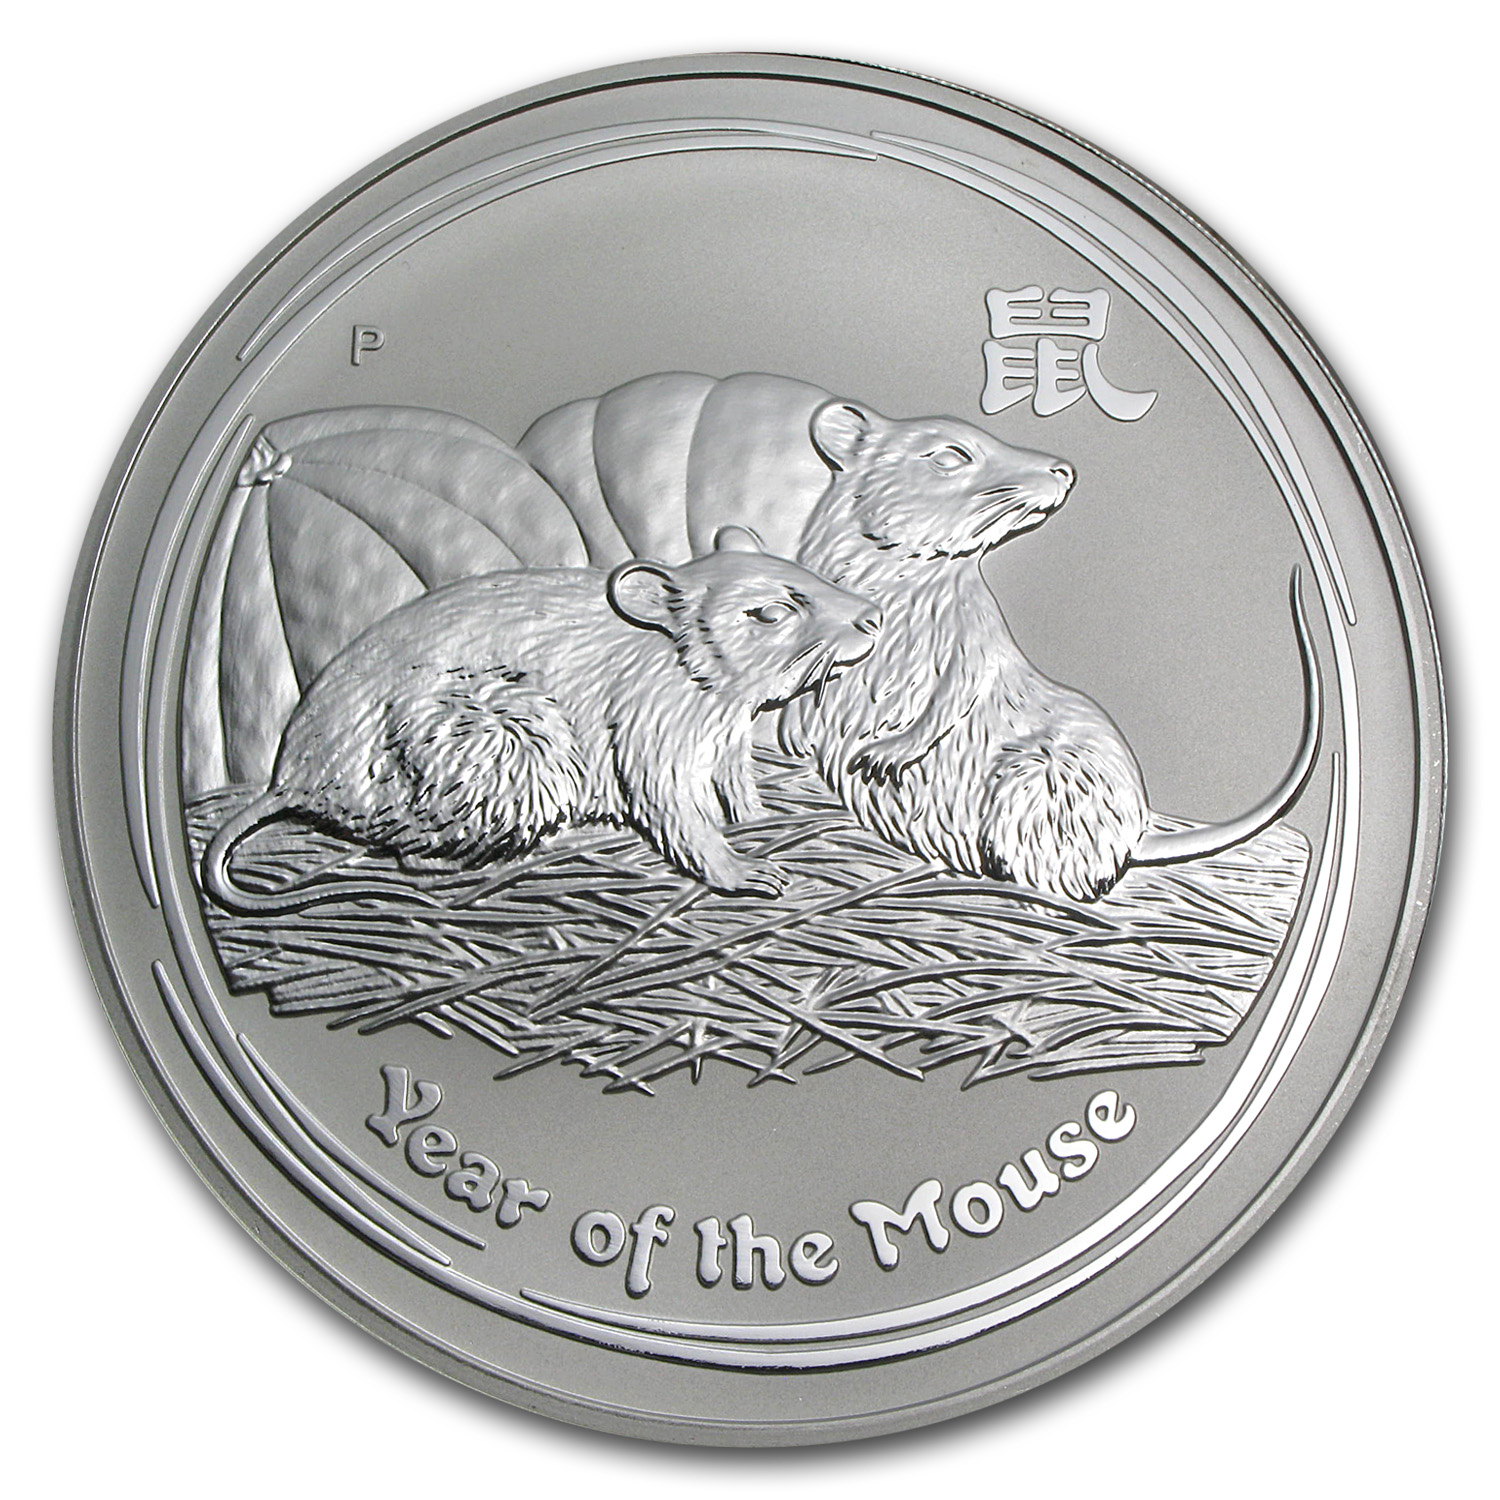 2008 1 Kilo Silver Australian Year of the Mouse Coin (Series II)